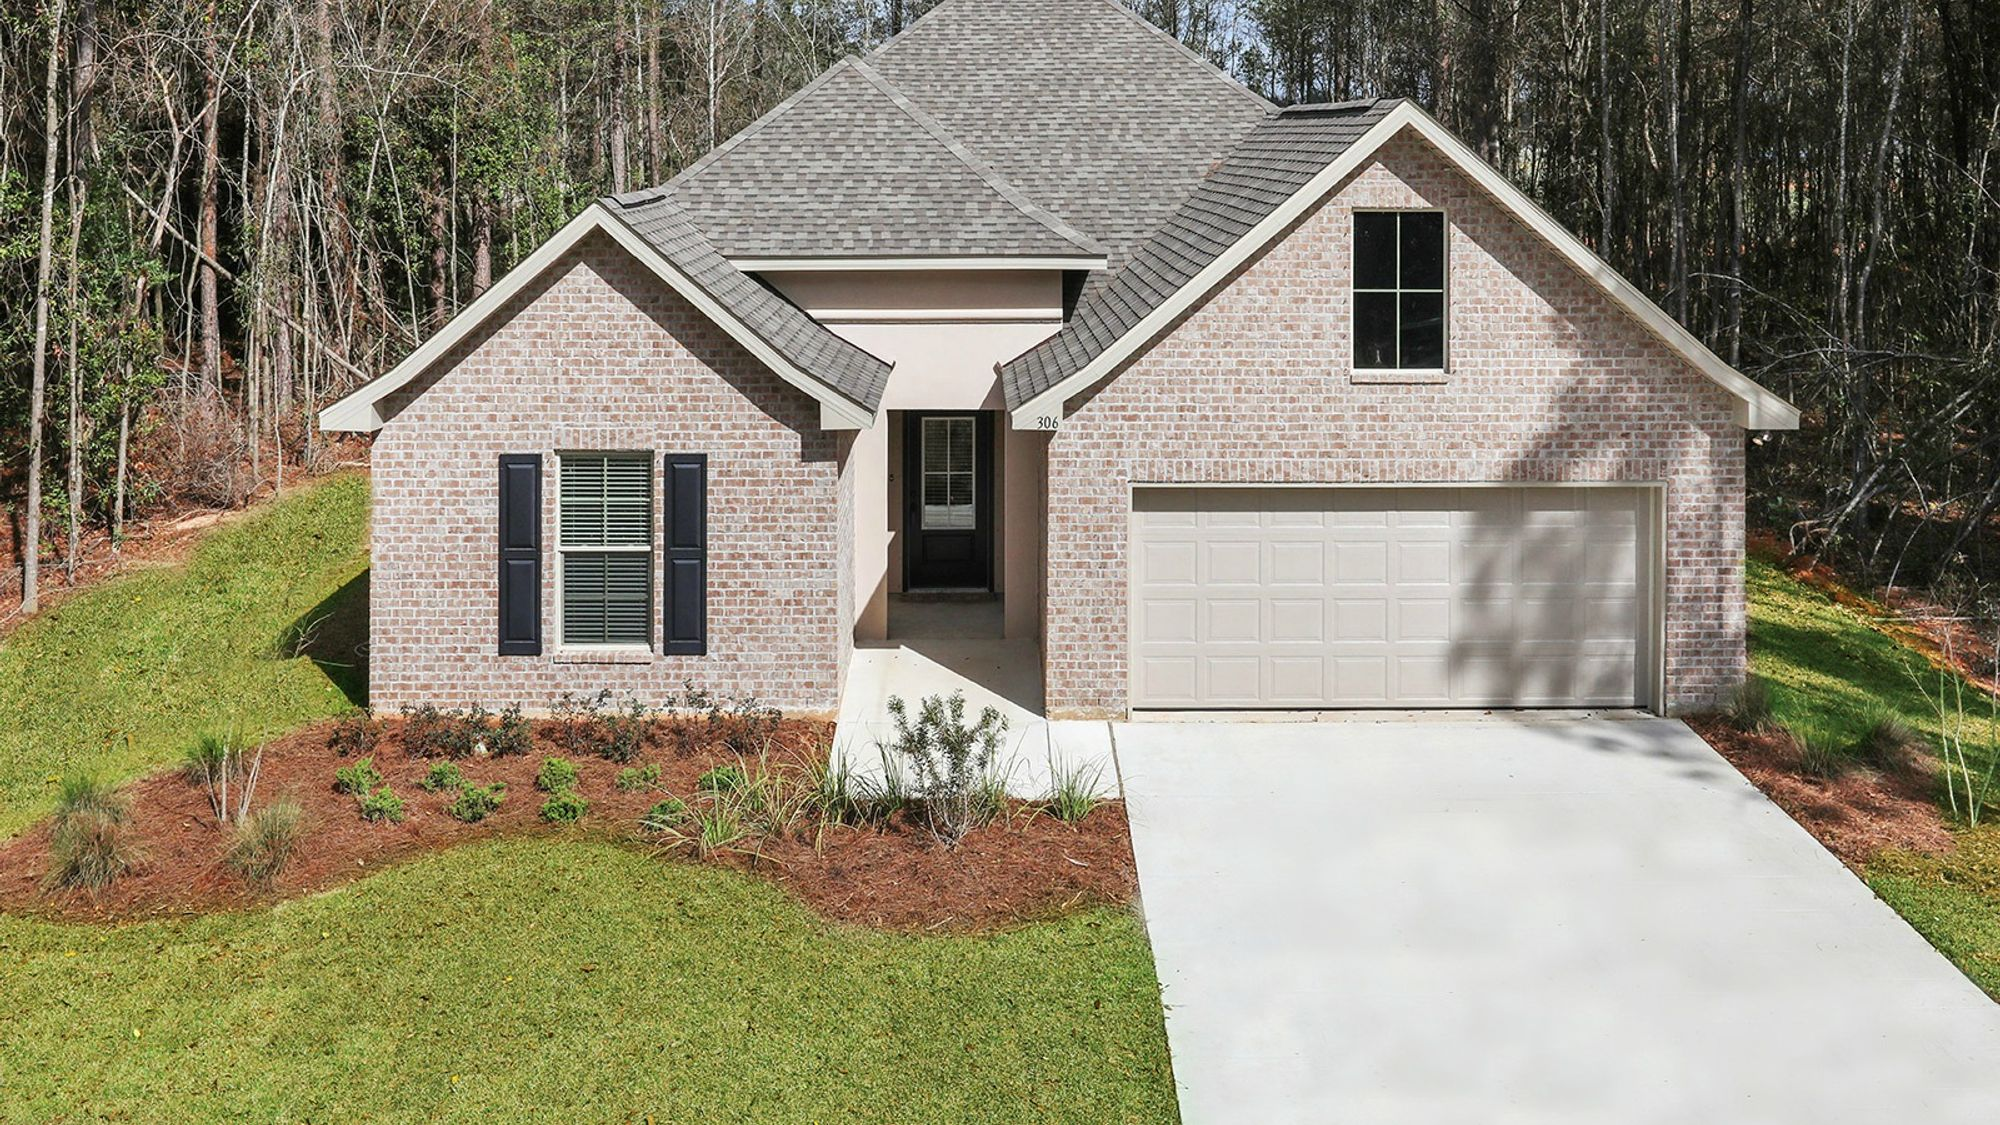 DSLD Homes - Briarpatch - Huntsville, AL - Norwood II B Floorplan - Exterior Image